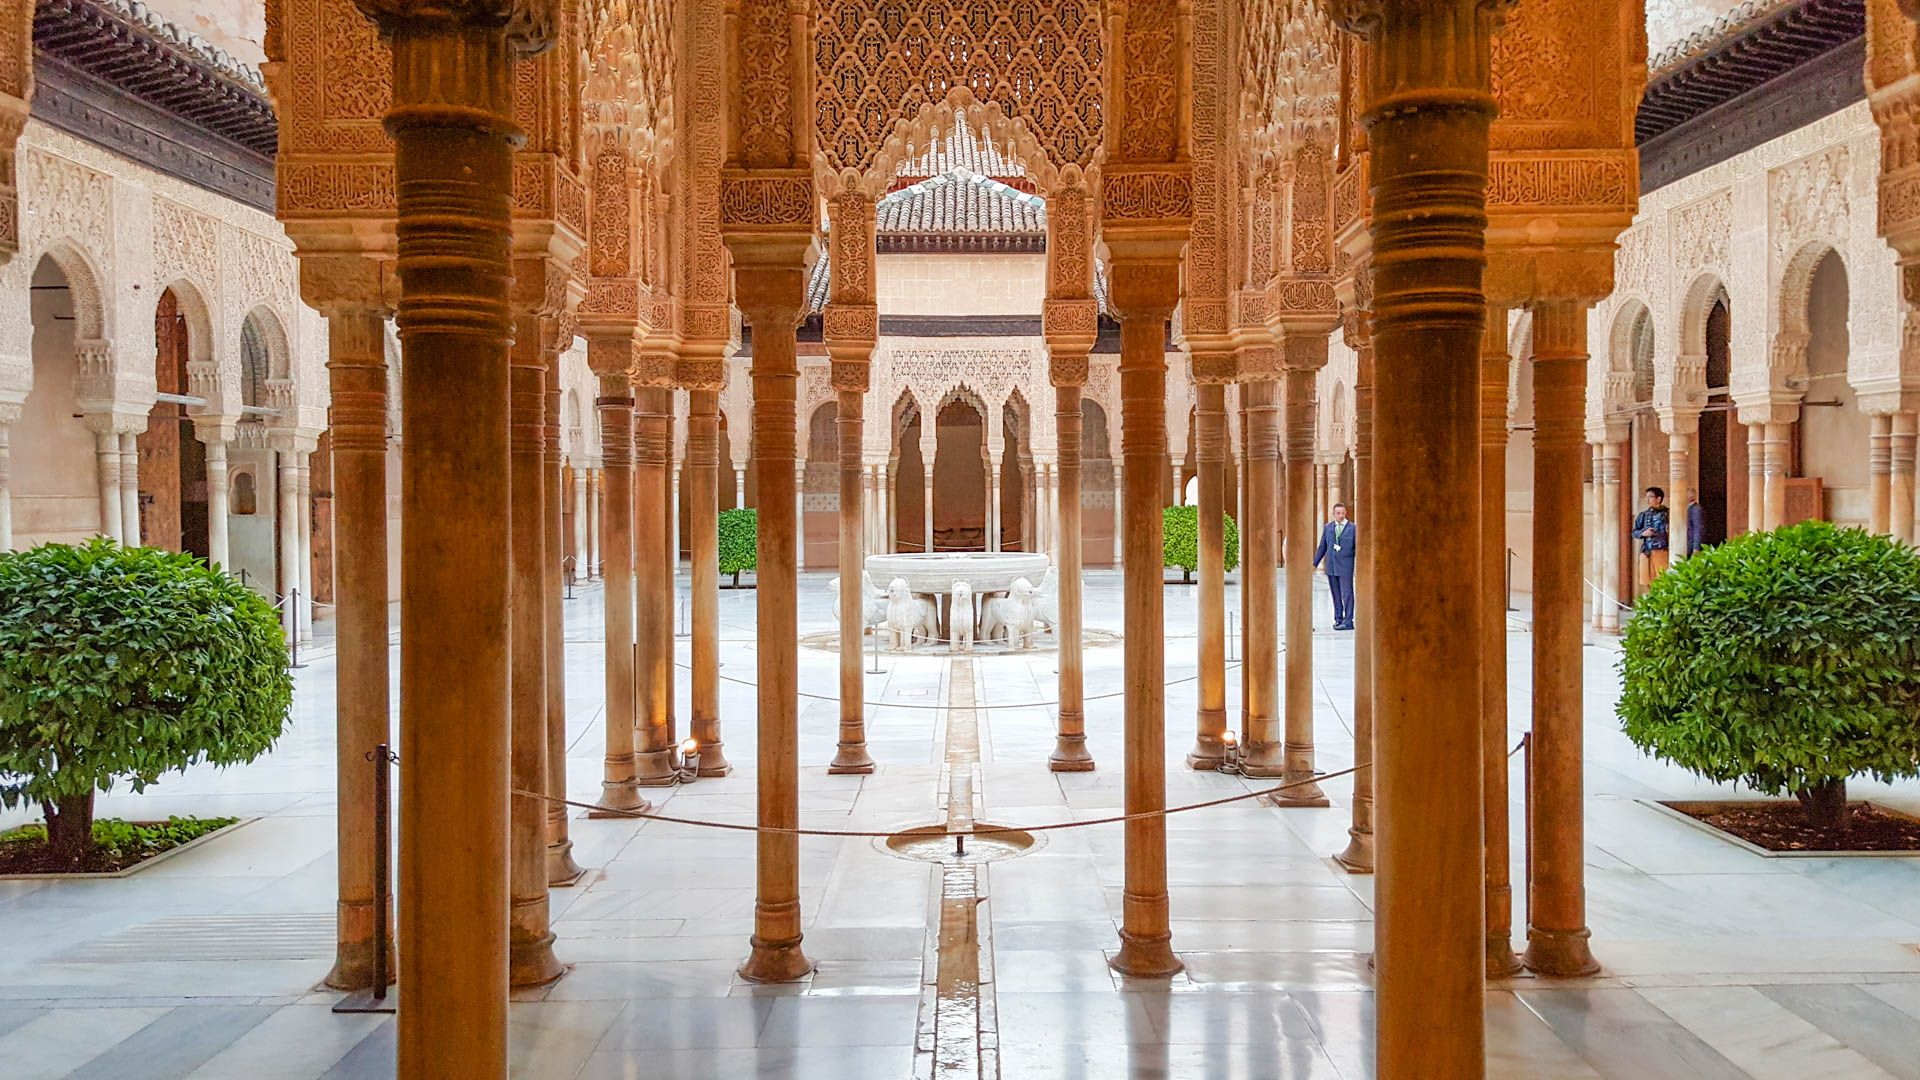 Exploring The Alhambra Palace And Fortress In Granada, Spain   Alhambra  palace, Alhambra spain, Medieval castles in europe